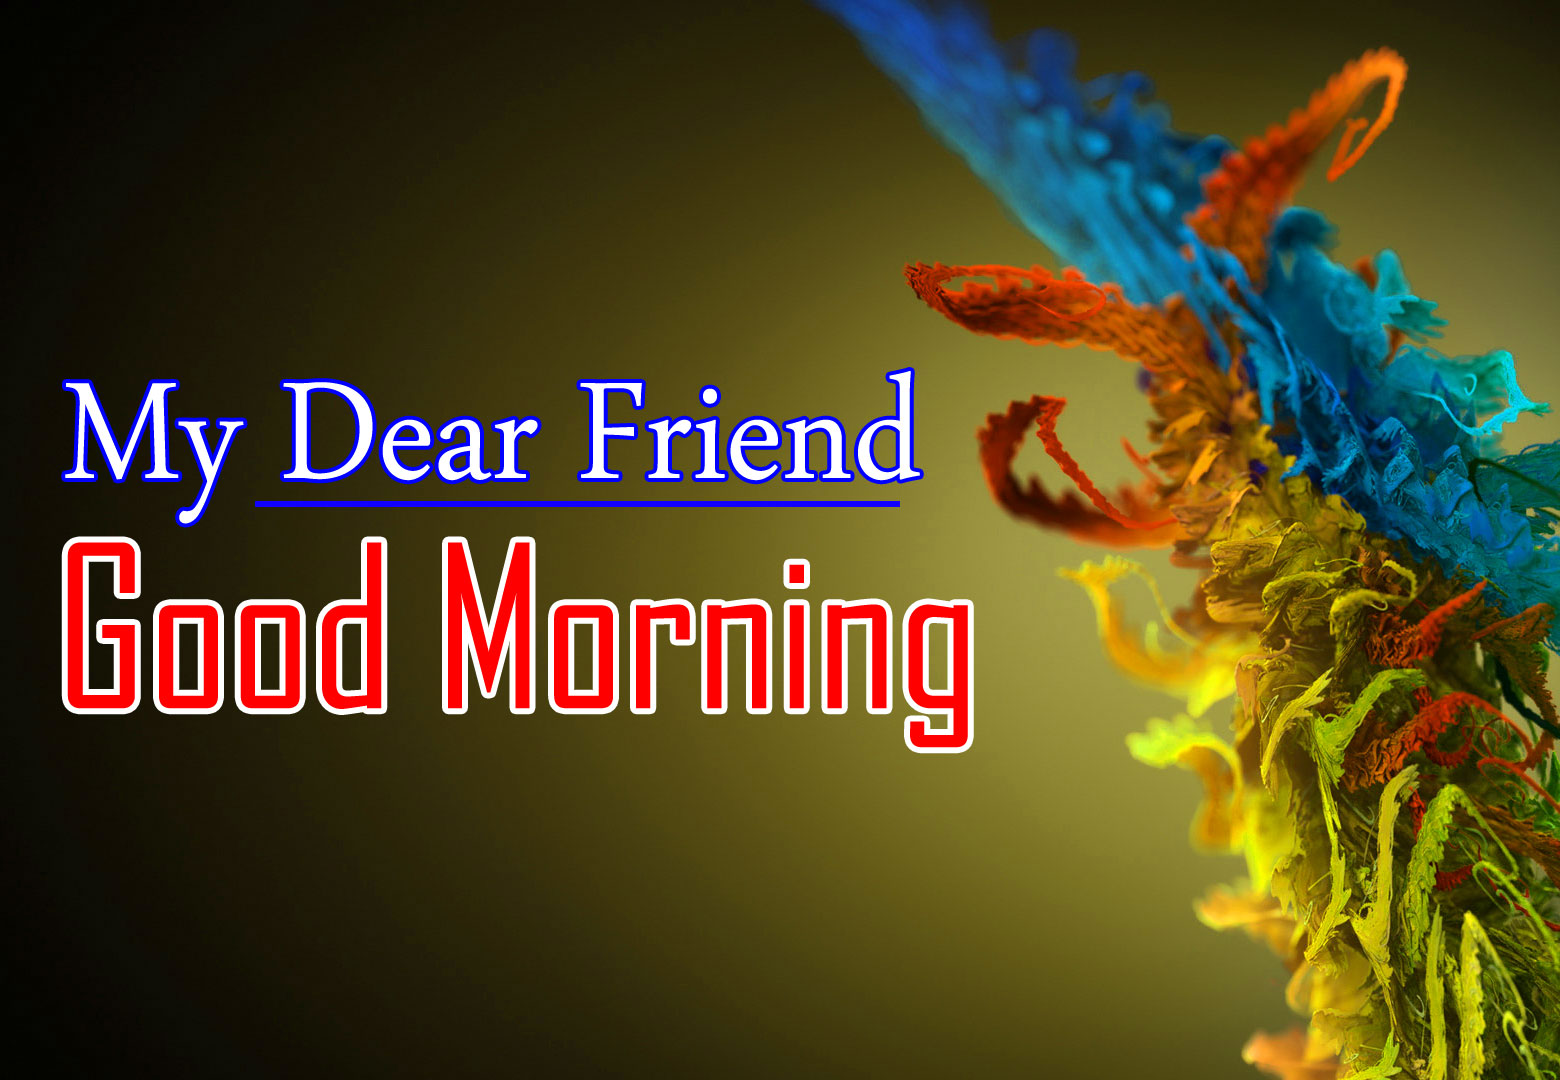 New Free 1080p Good morning HD Pic Photo Download